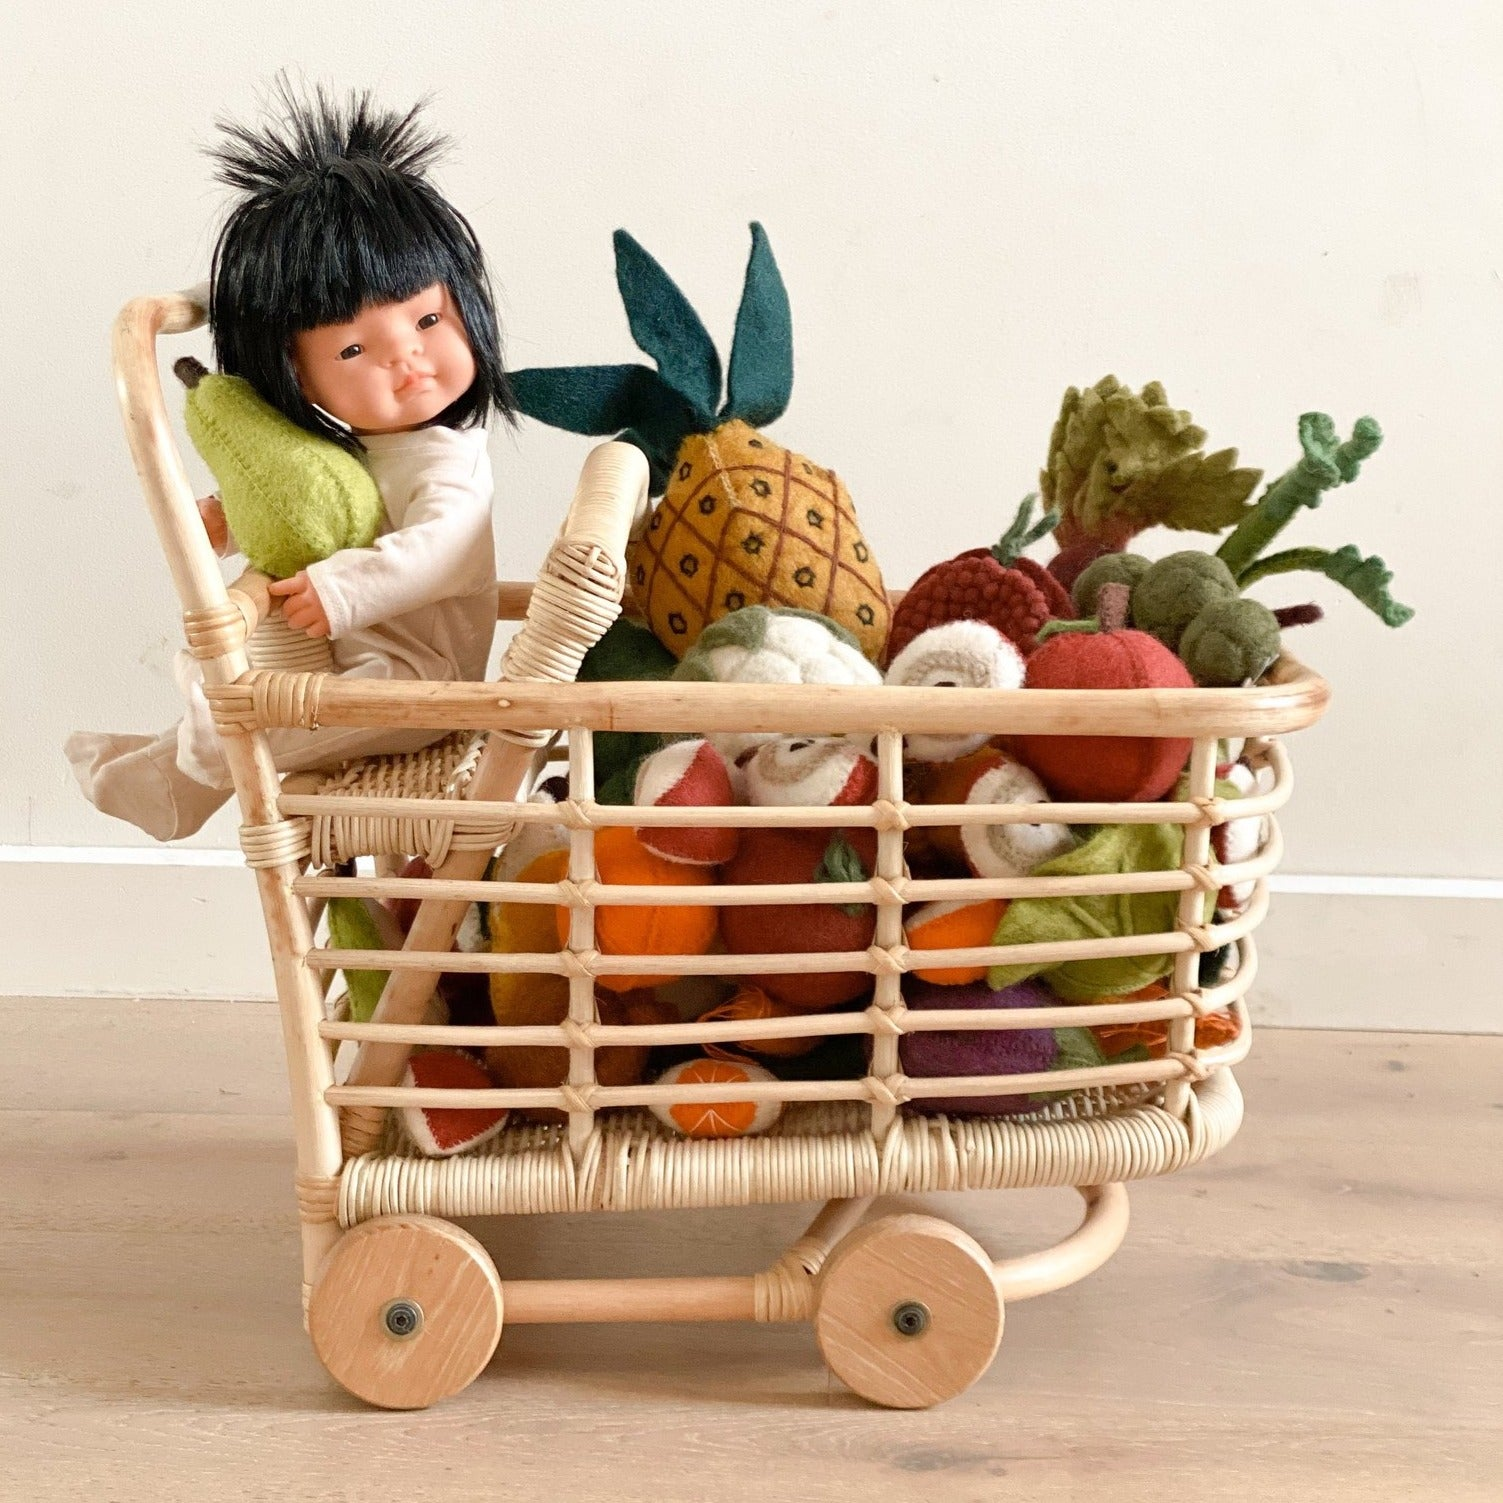 Tiny Harlow Doll's Toy rattan Shopping trolley. toy cart.